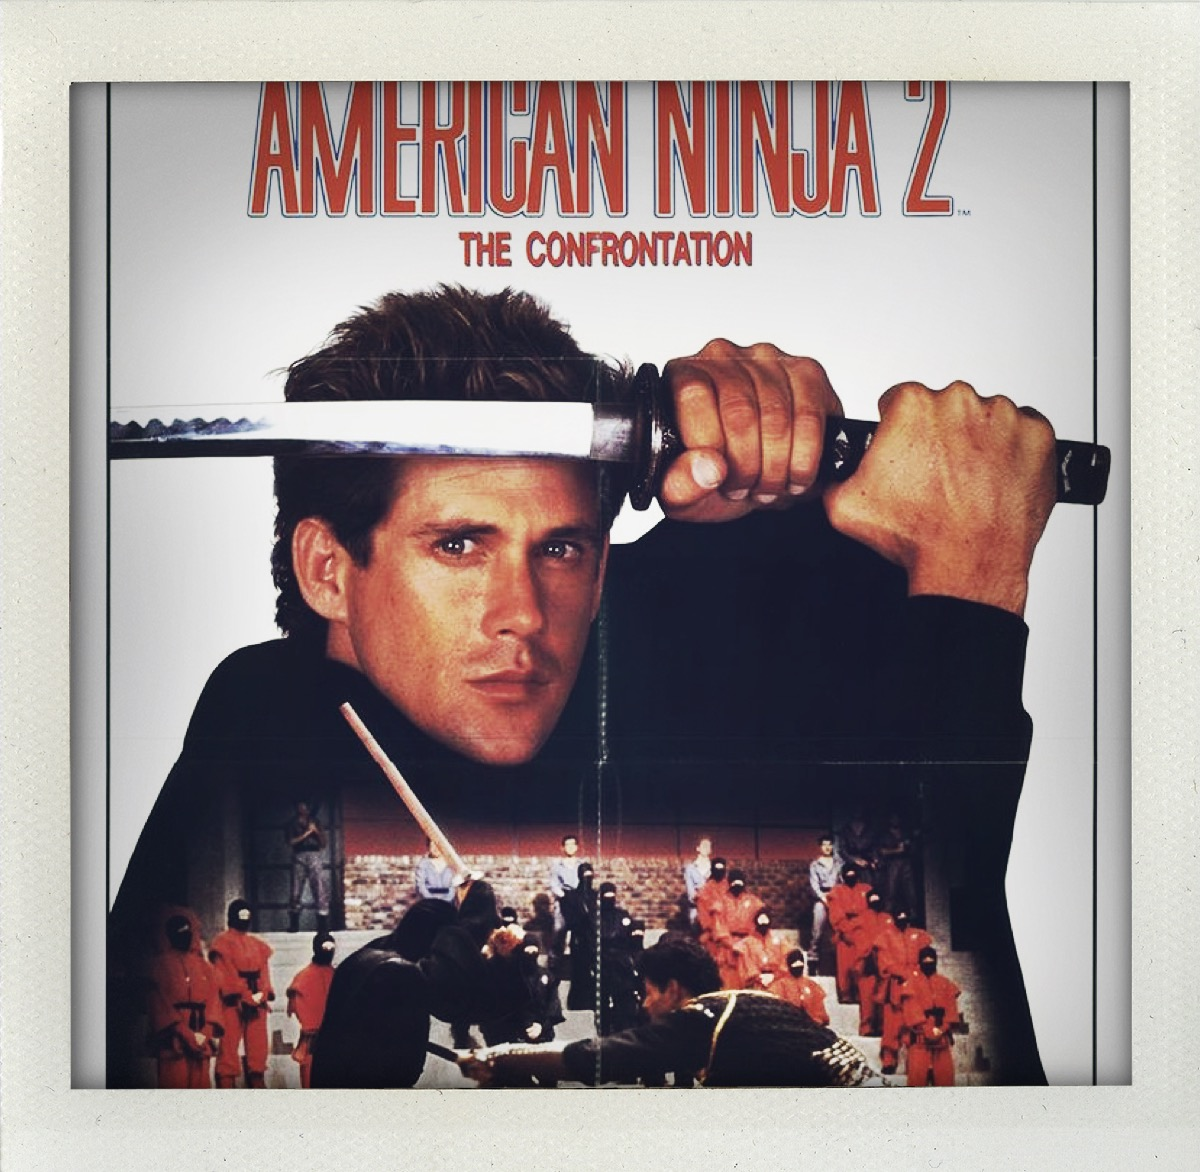 1987 in FIlm – American Ninja 2: The Confrontation – A Bad